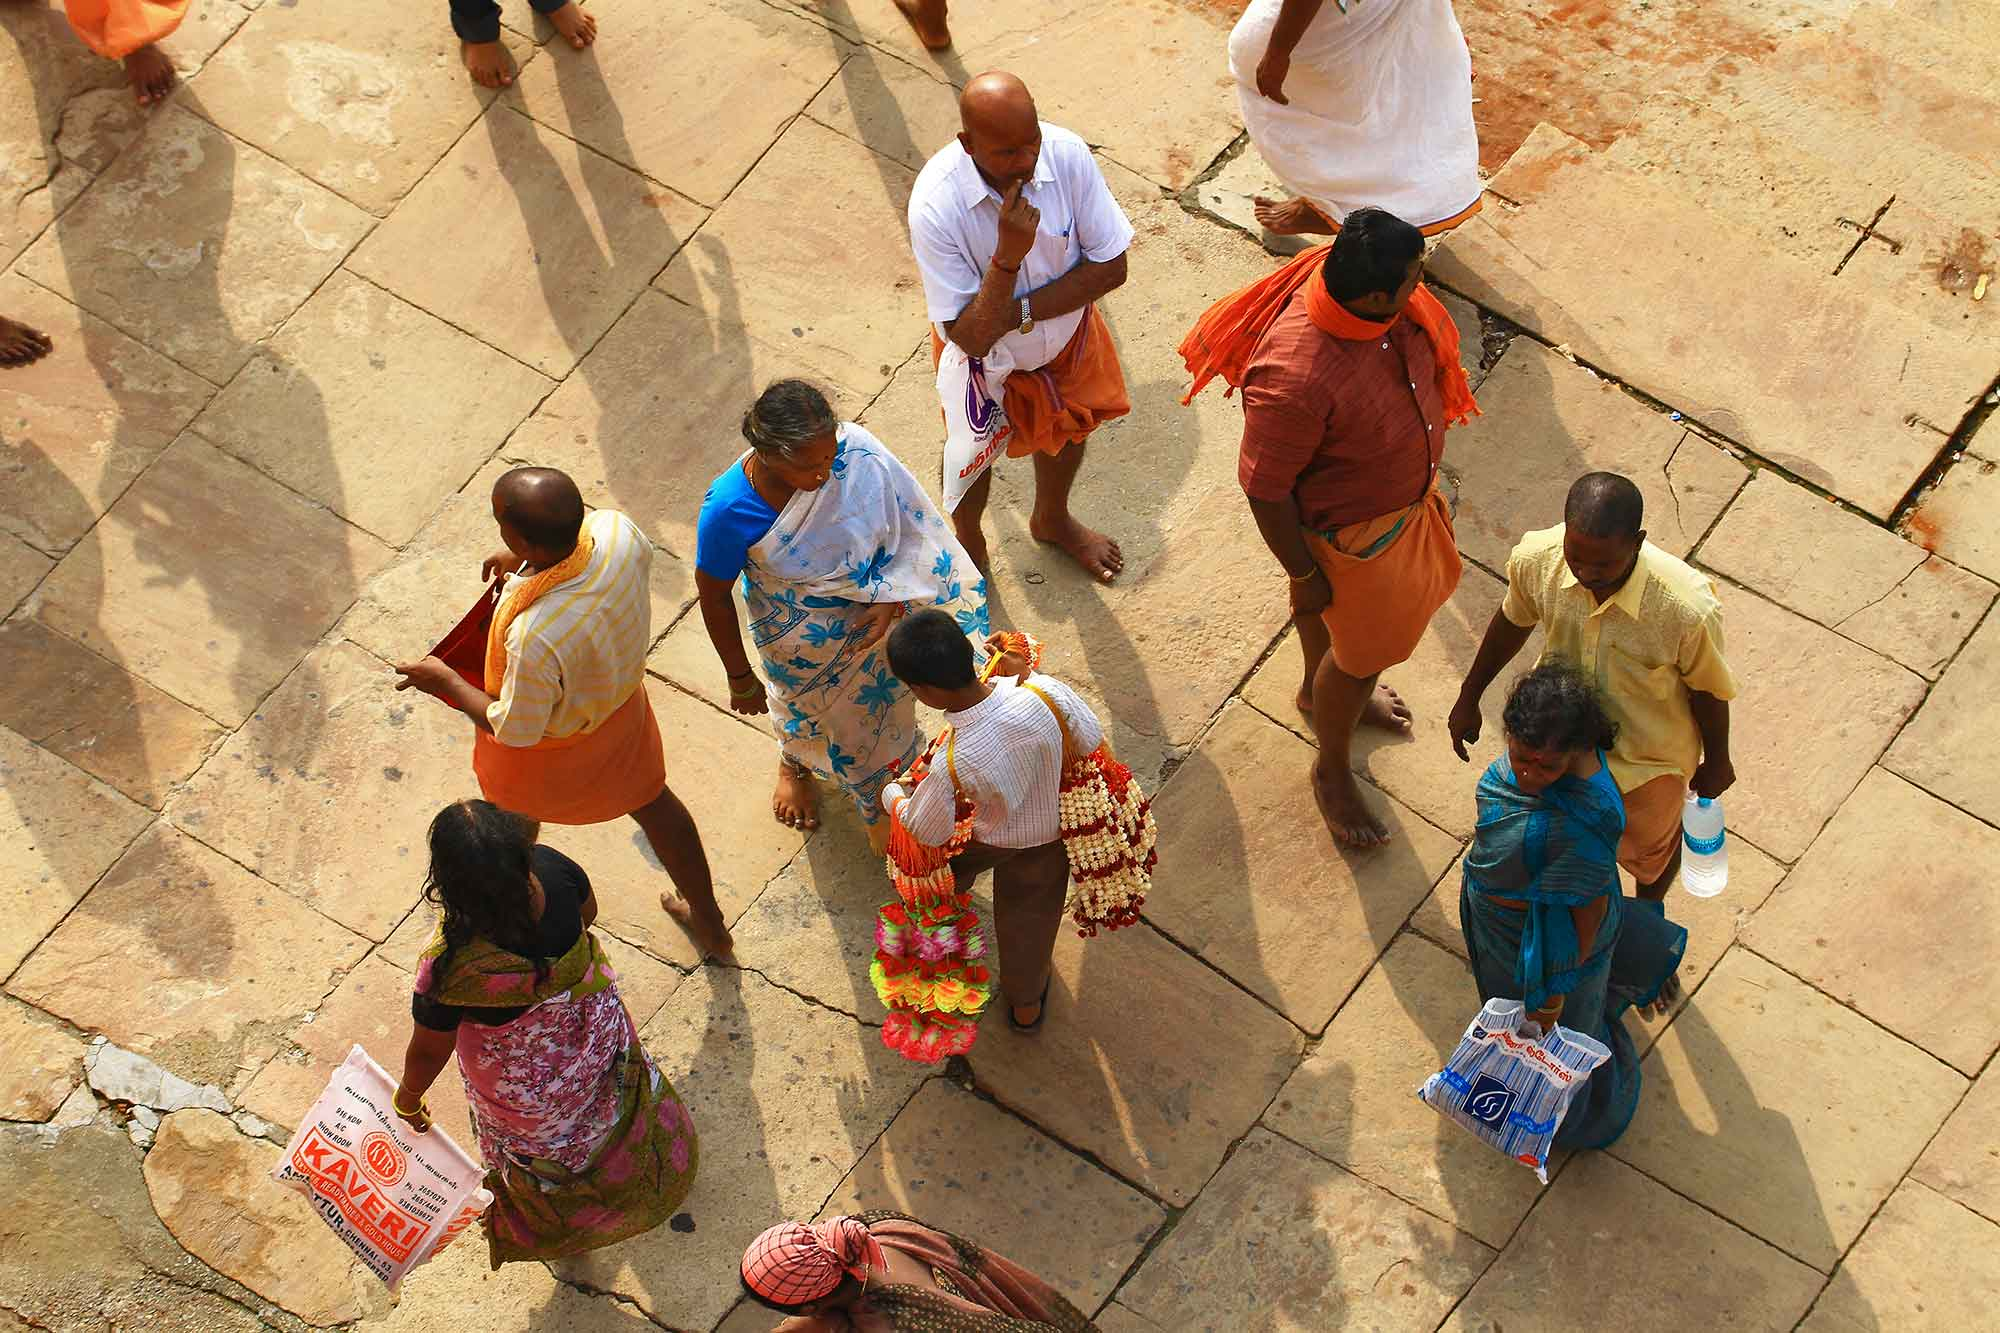 people-from-above-ghats-varanasi-india